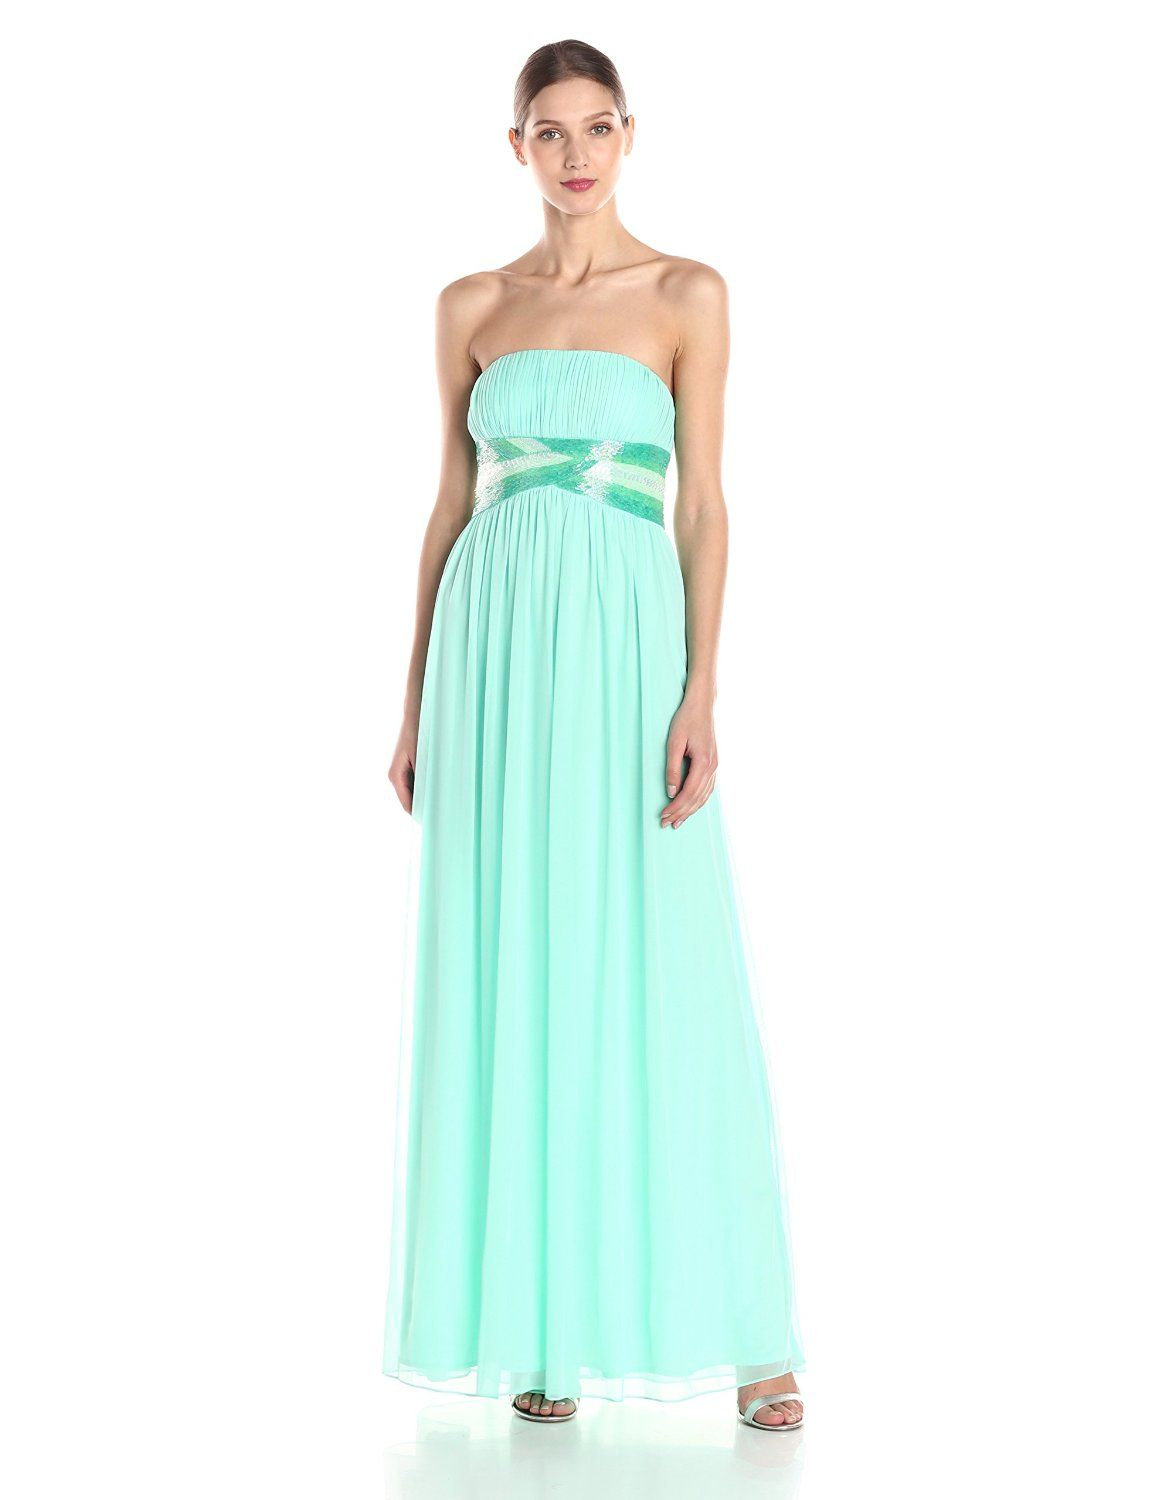 Pleated Strapless Gown with Ombre Beads by JS Boutique | Gowns ...